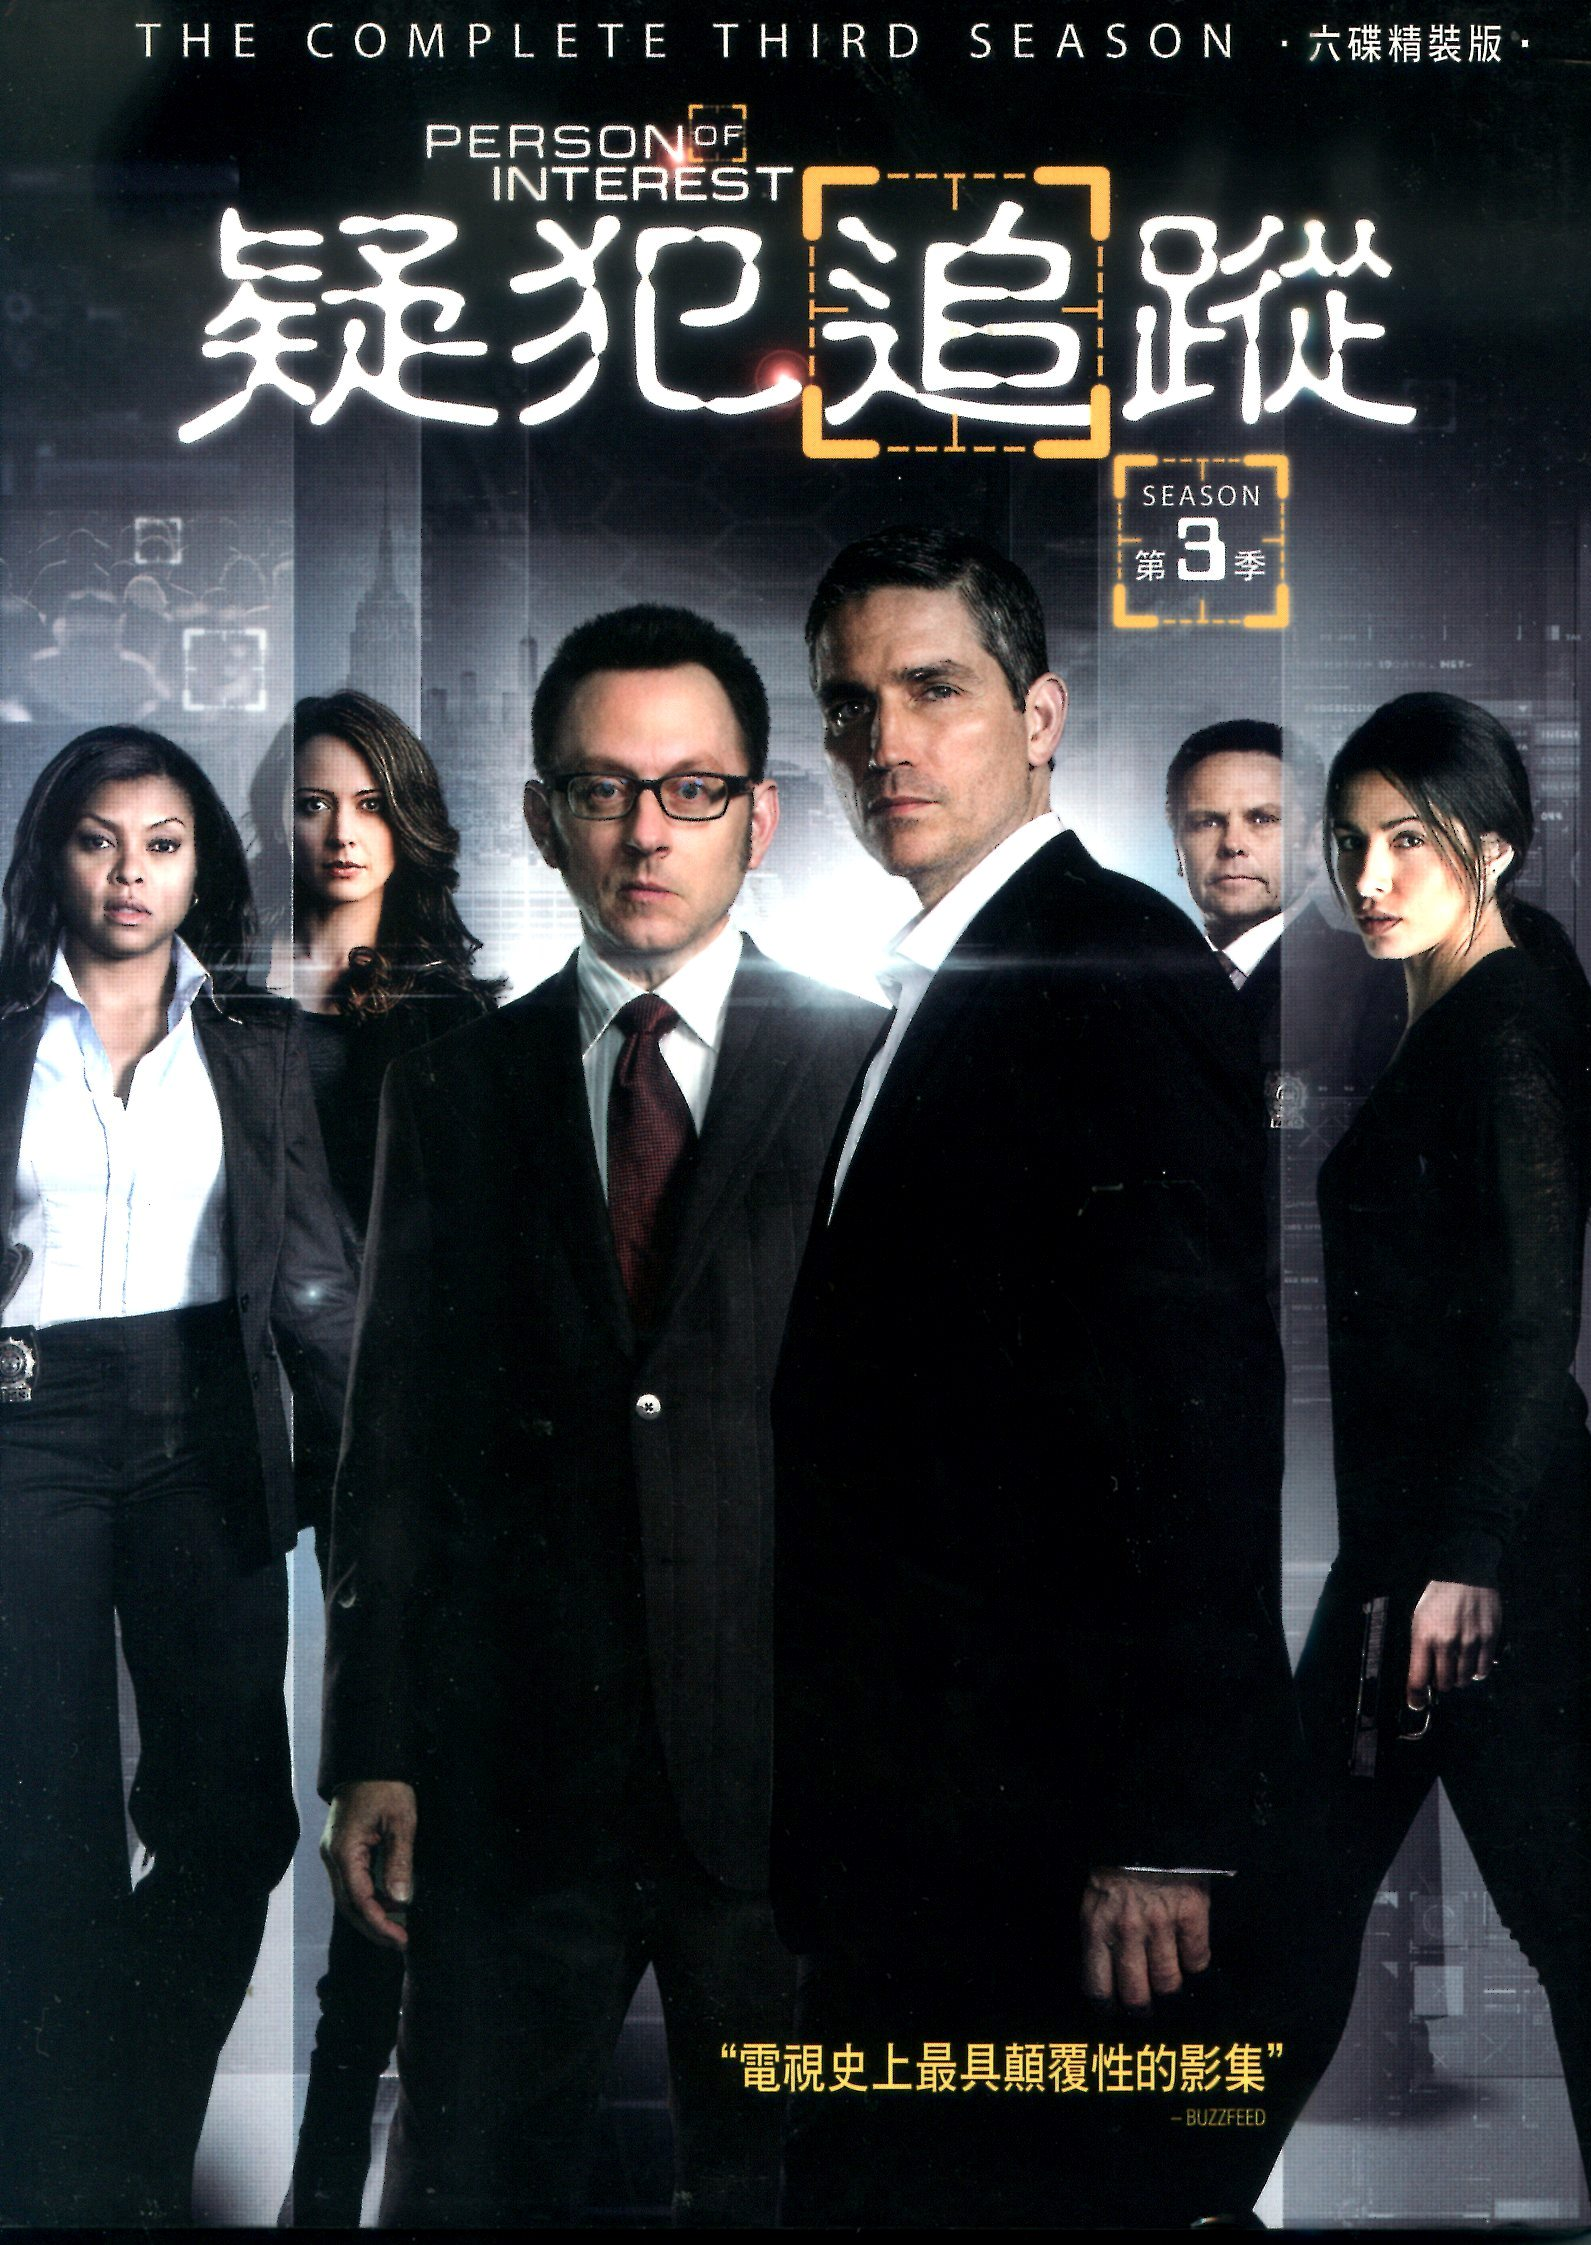 Person of interest(家用版) the complete third season = 疑犯追蹤.